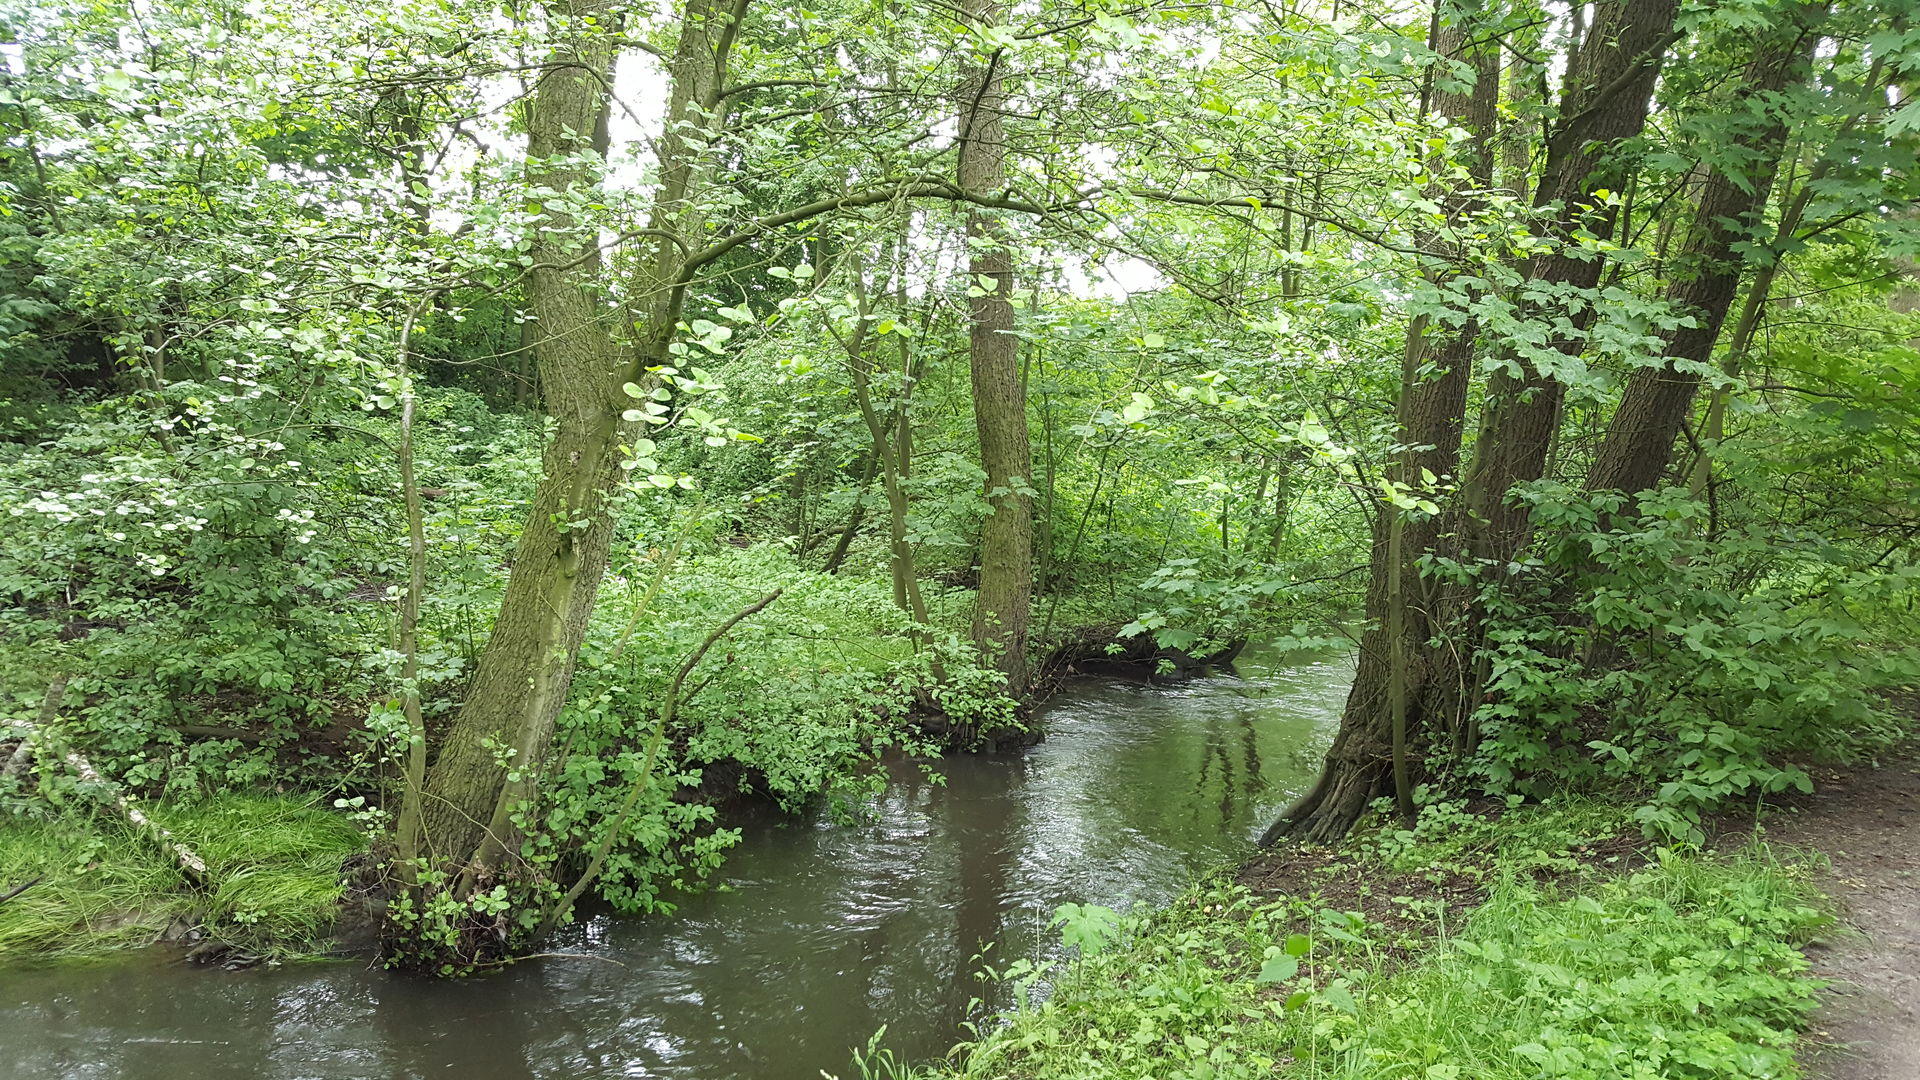 Das Foto zeigt den Bach Kollau im Wald bei Niendorf Hamburg // the photo shows the creek Kollau in the forest near Hamburg Germany